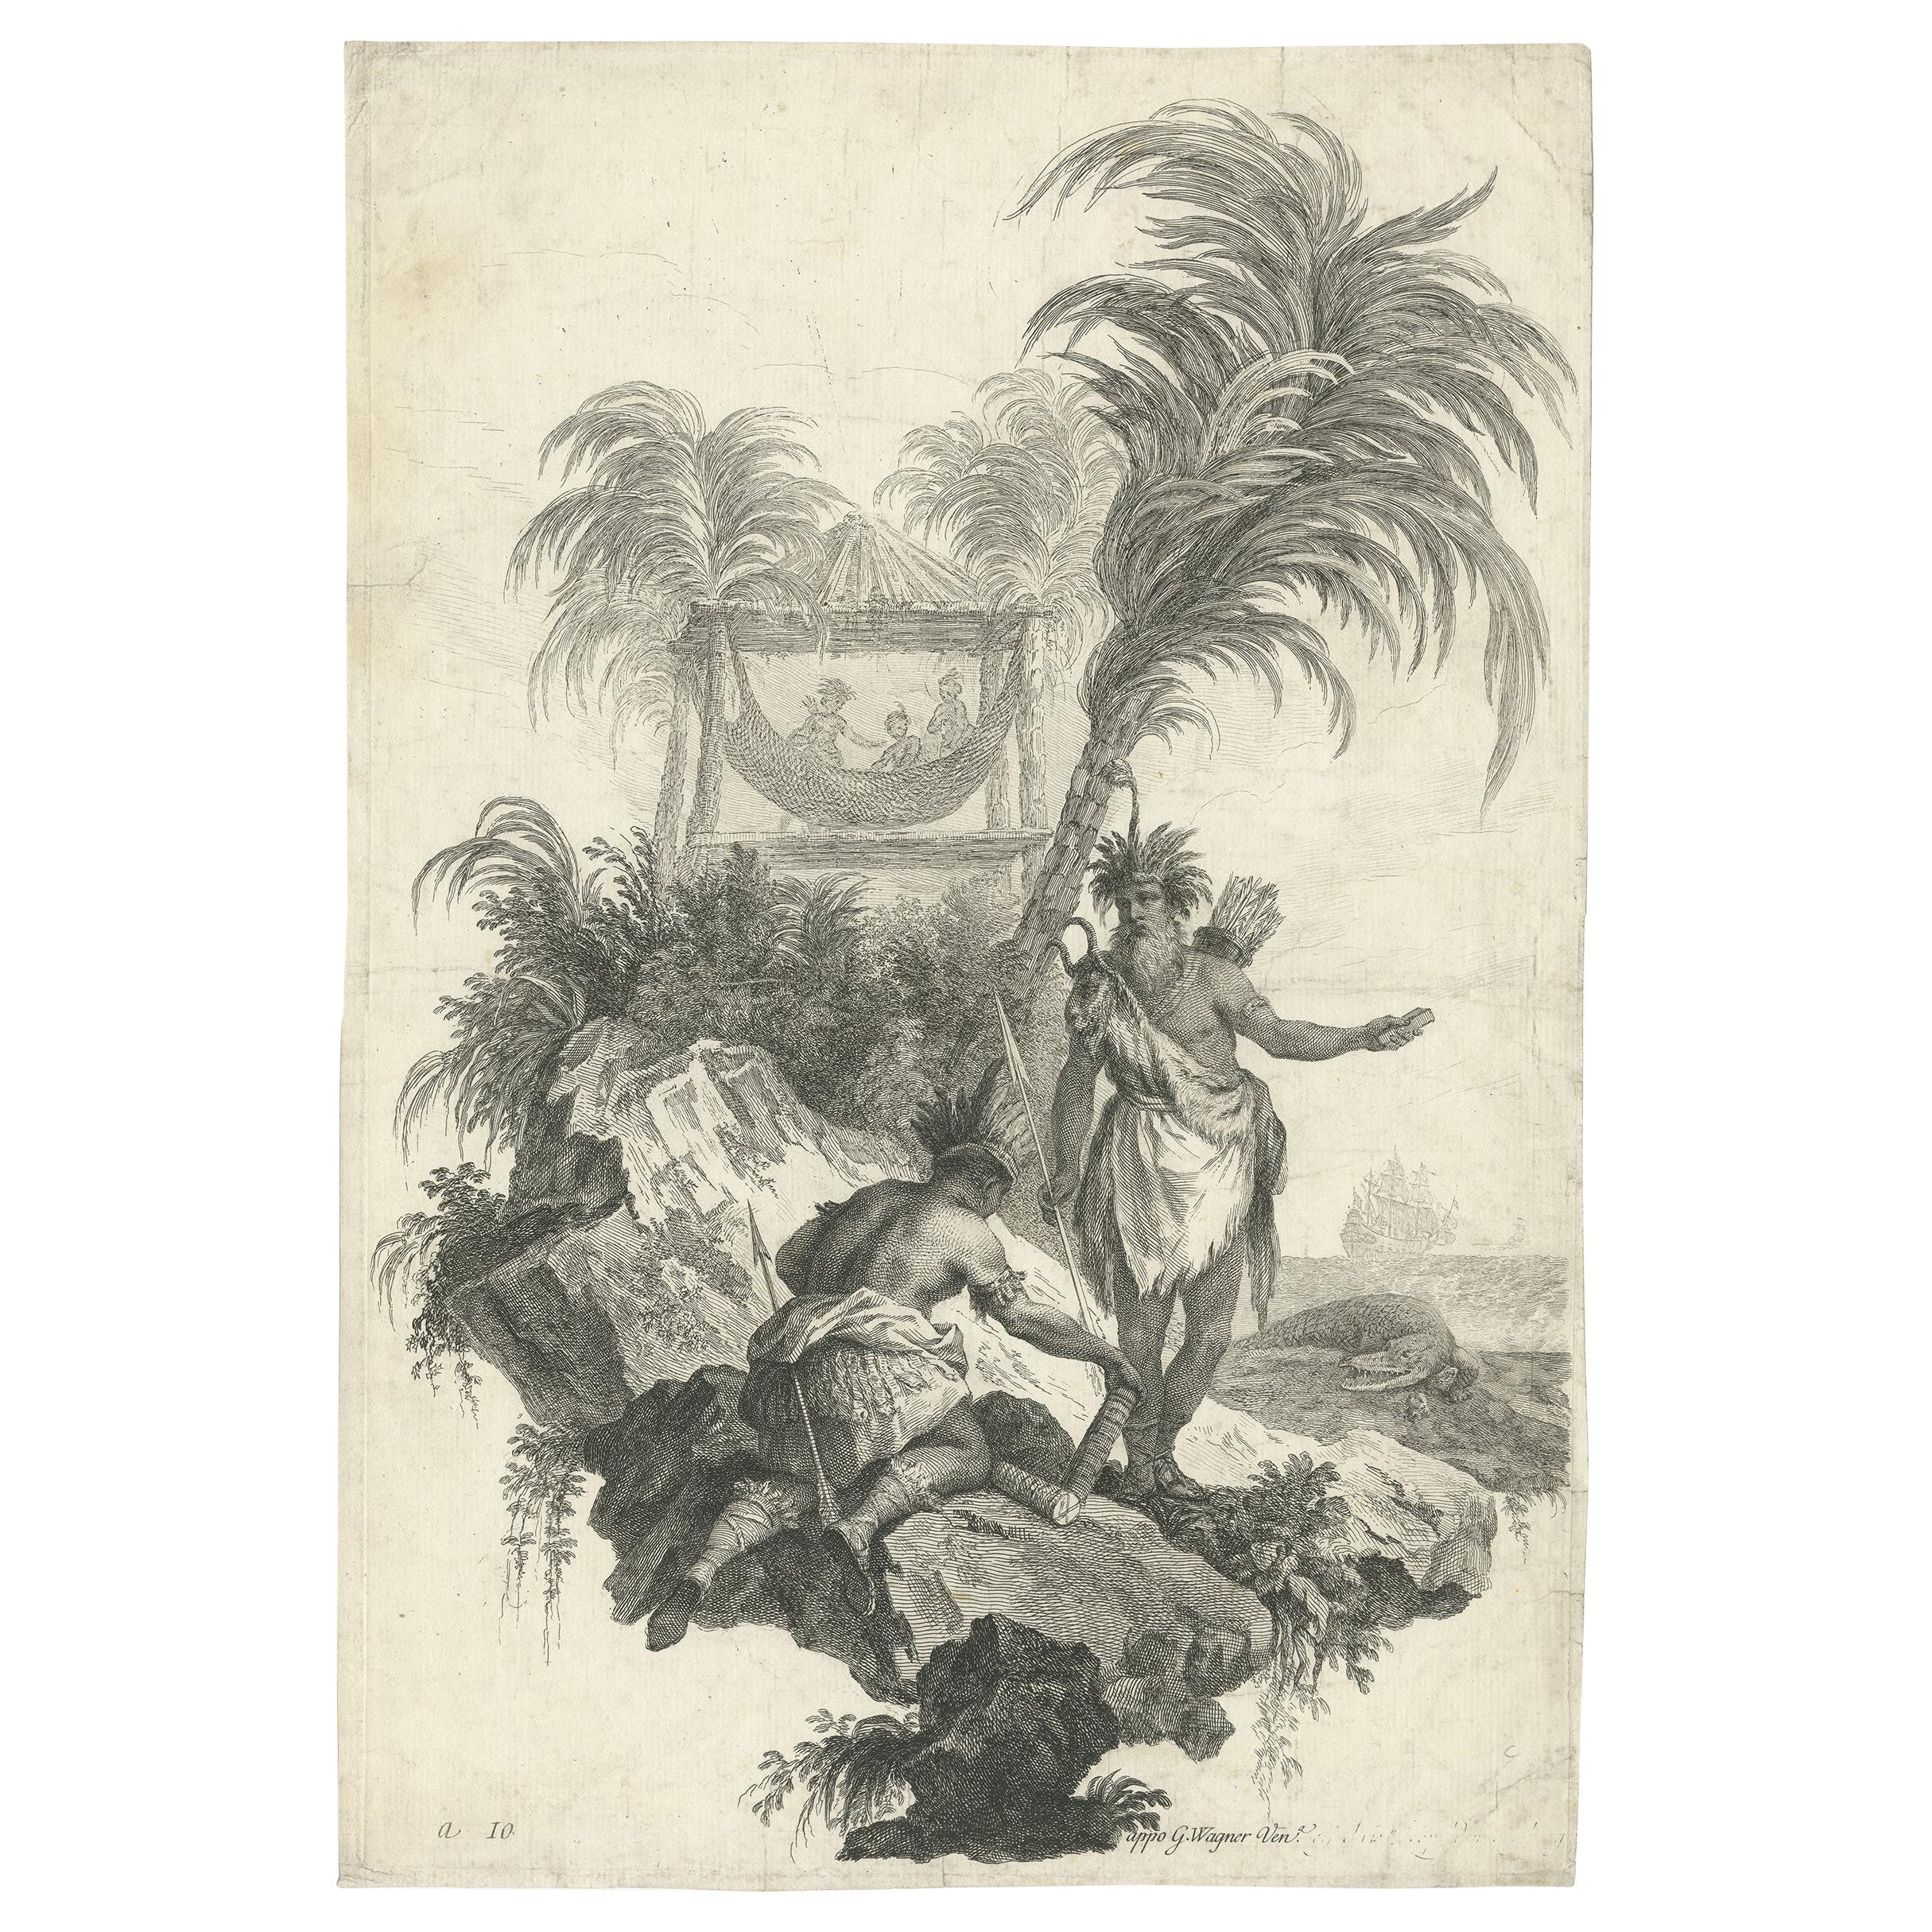 Antique Print of the 'African Continent' by Wagner, circa 1745